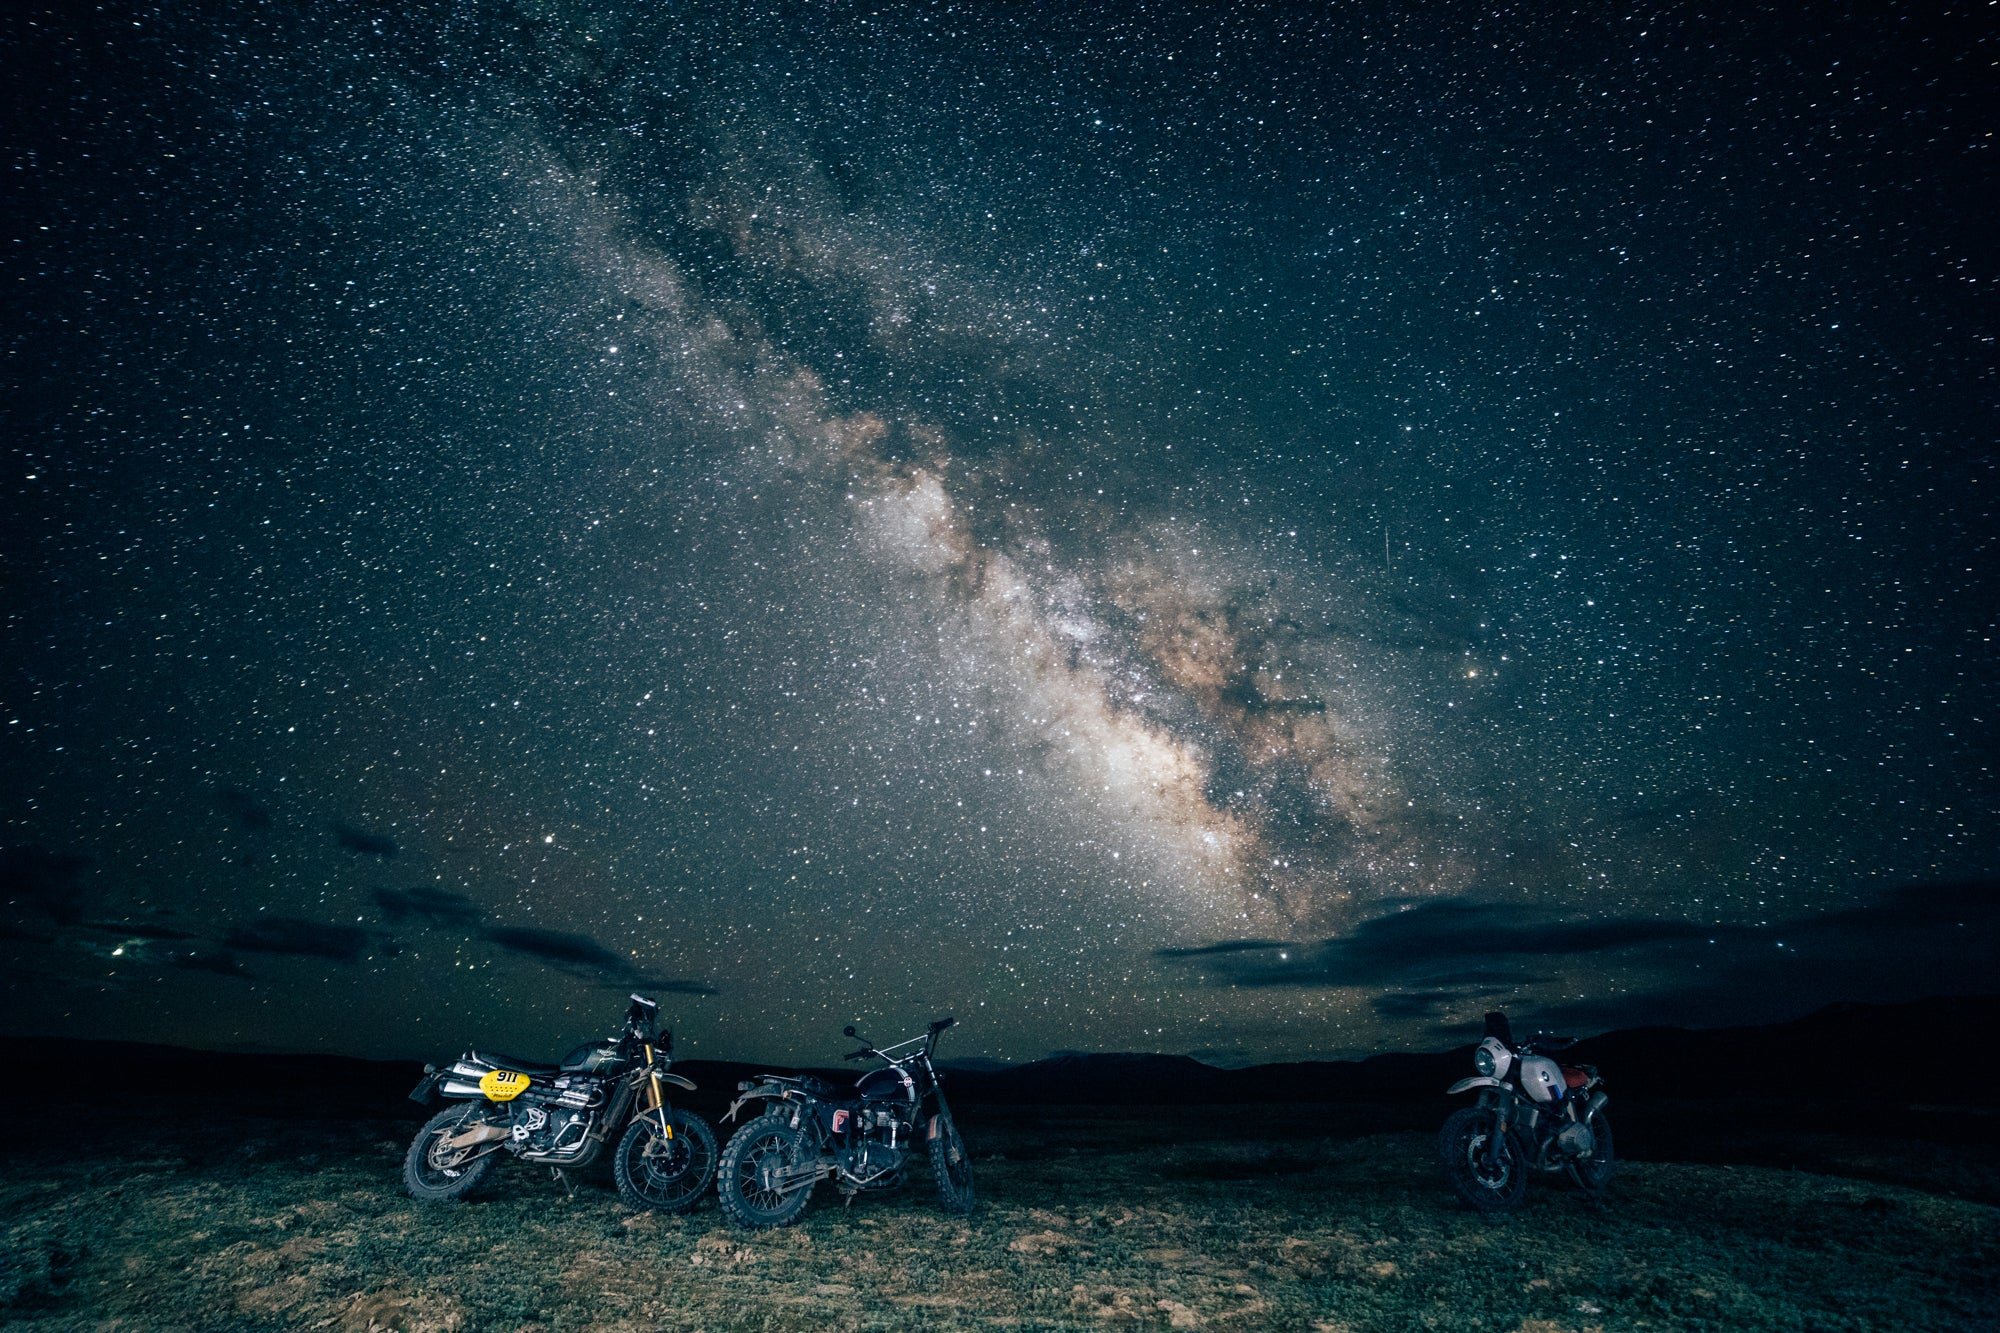 adventurers wanted sky full of stars